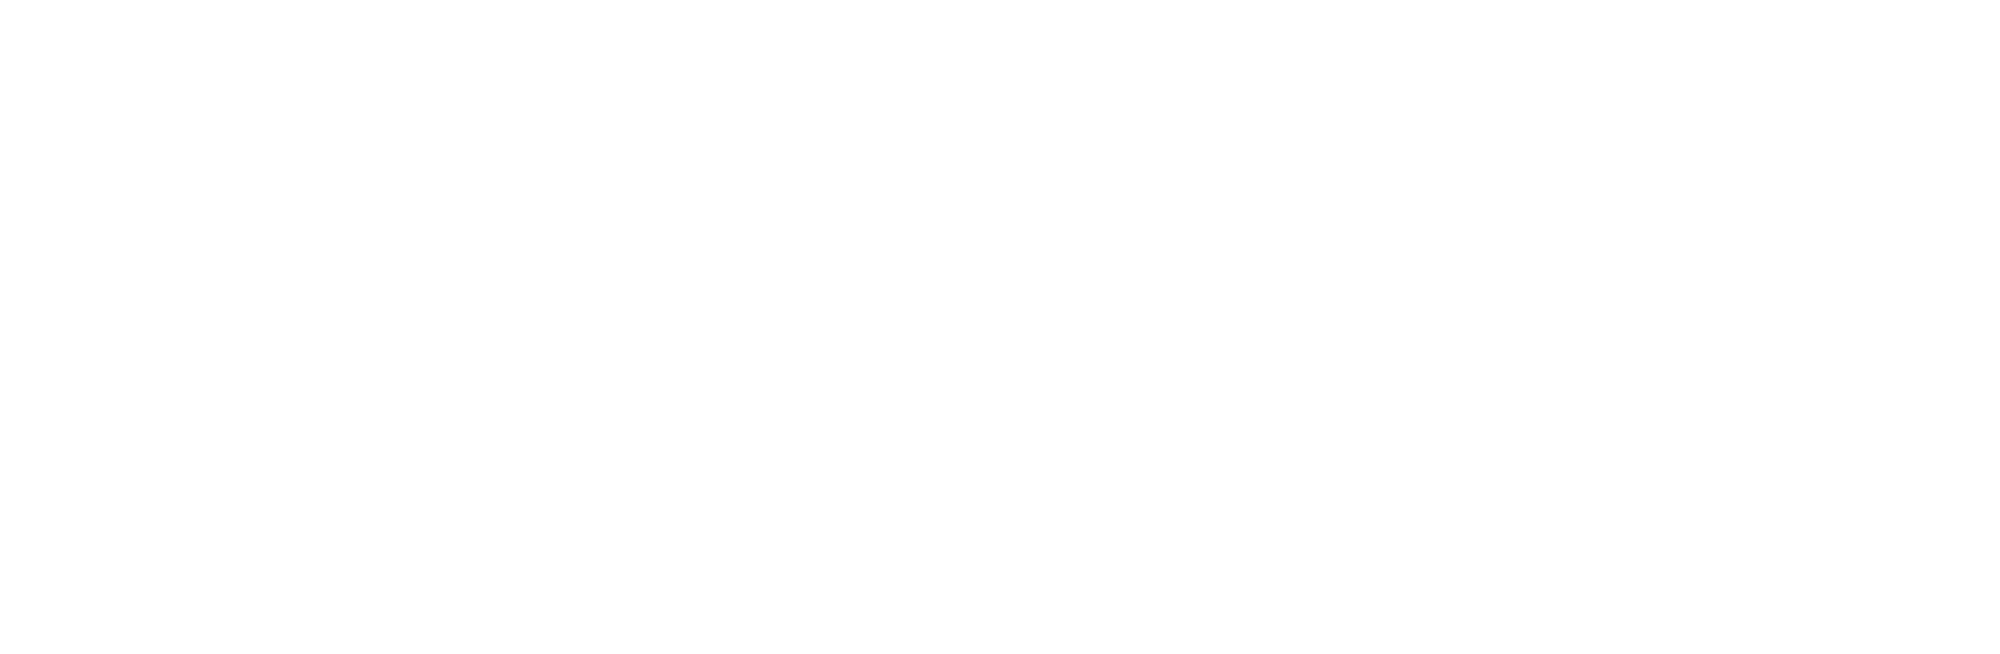 Alpha_Industries_logo_white.png